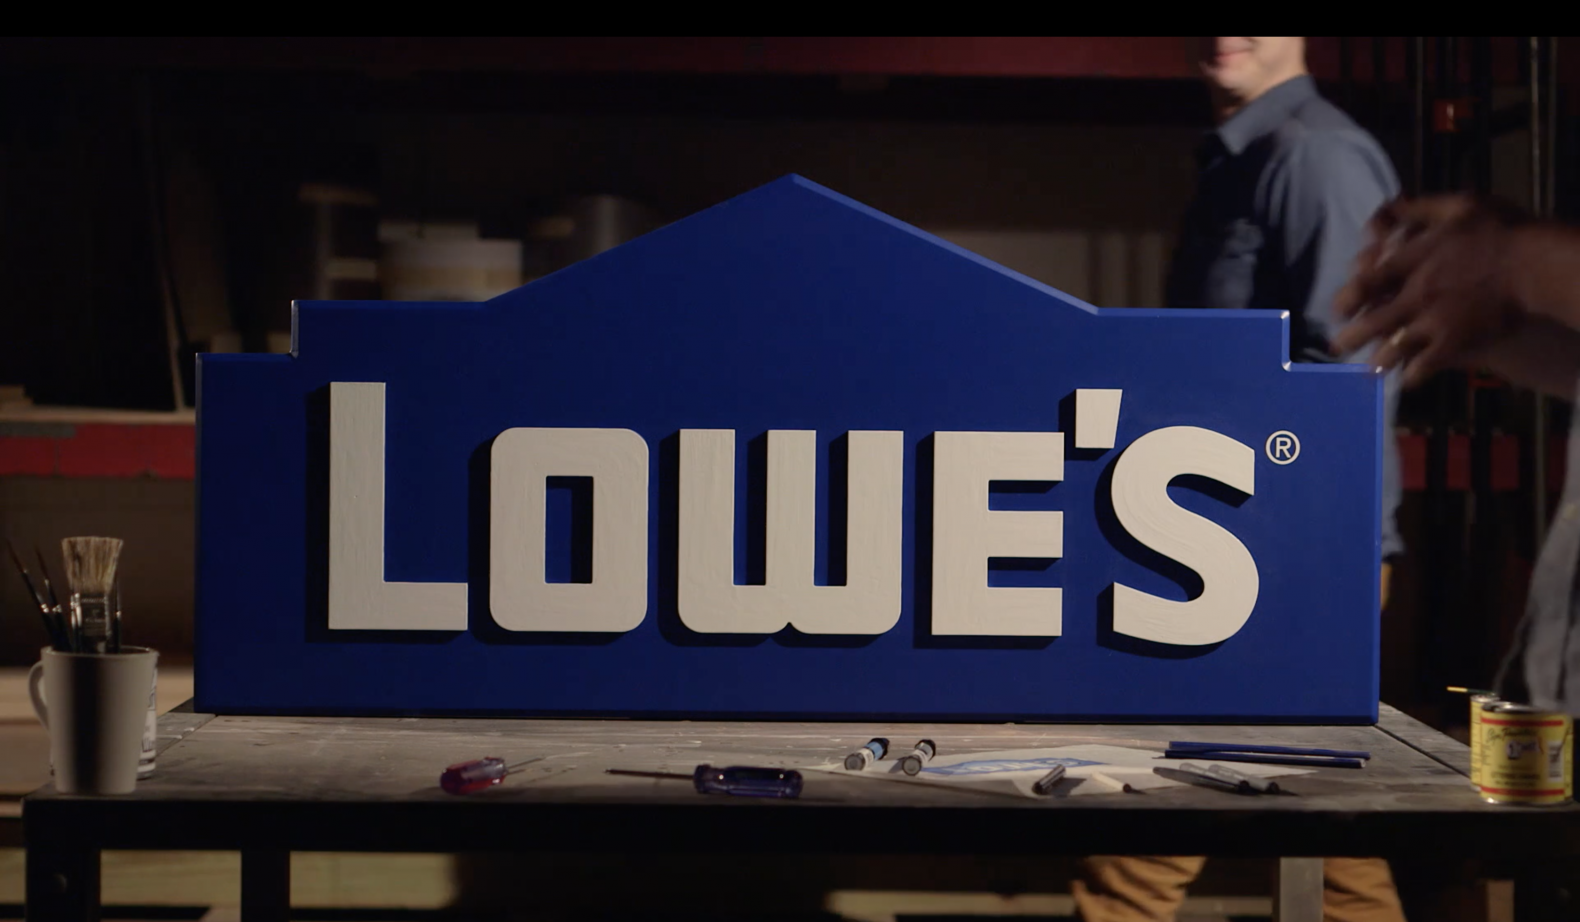 Video thumbnail image for Lowe's commercial with Lowe's logo on a drafting table.